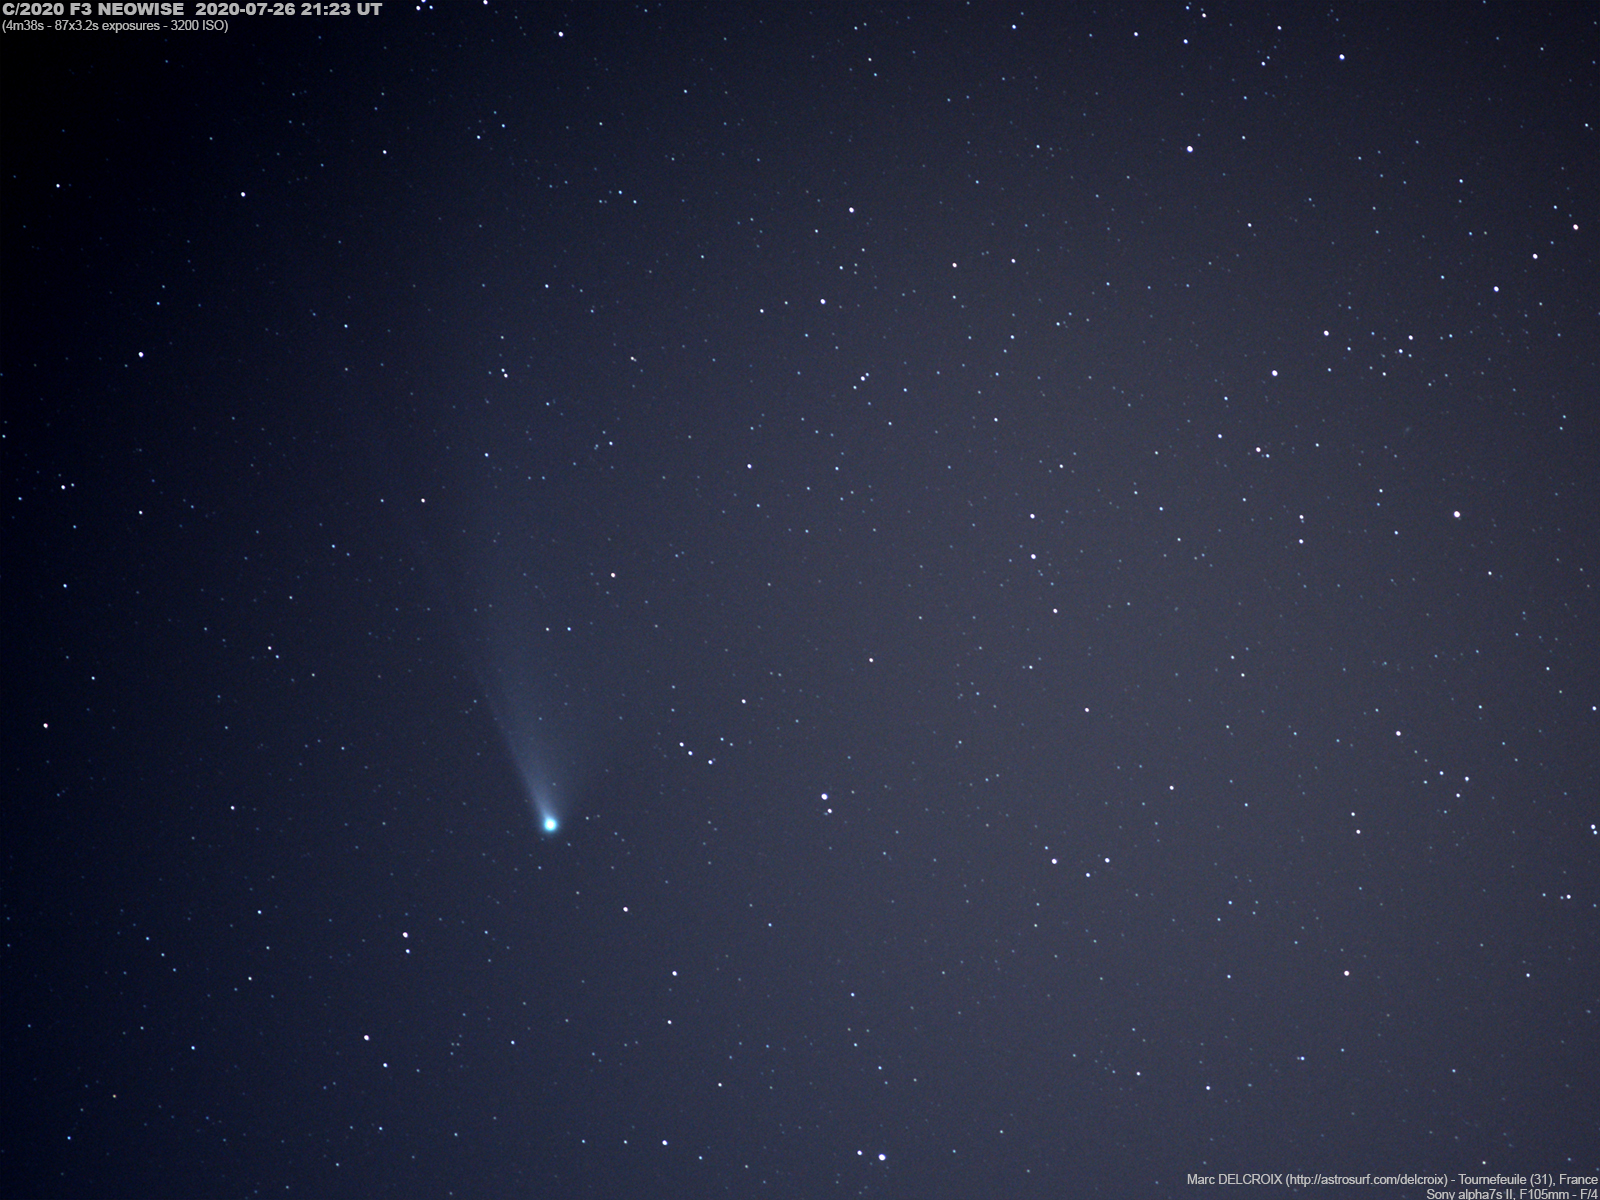 C2020F3_Neowise-20200726_md.jpg